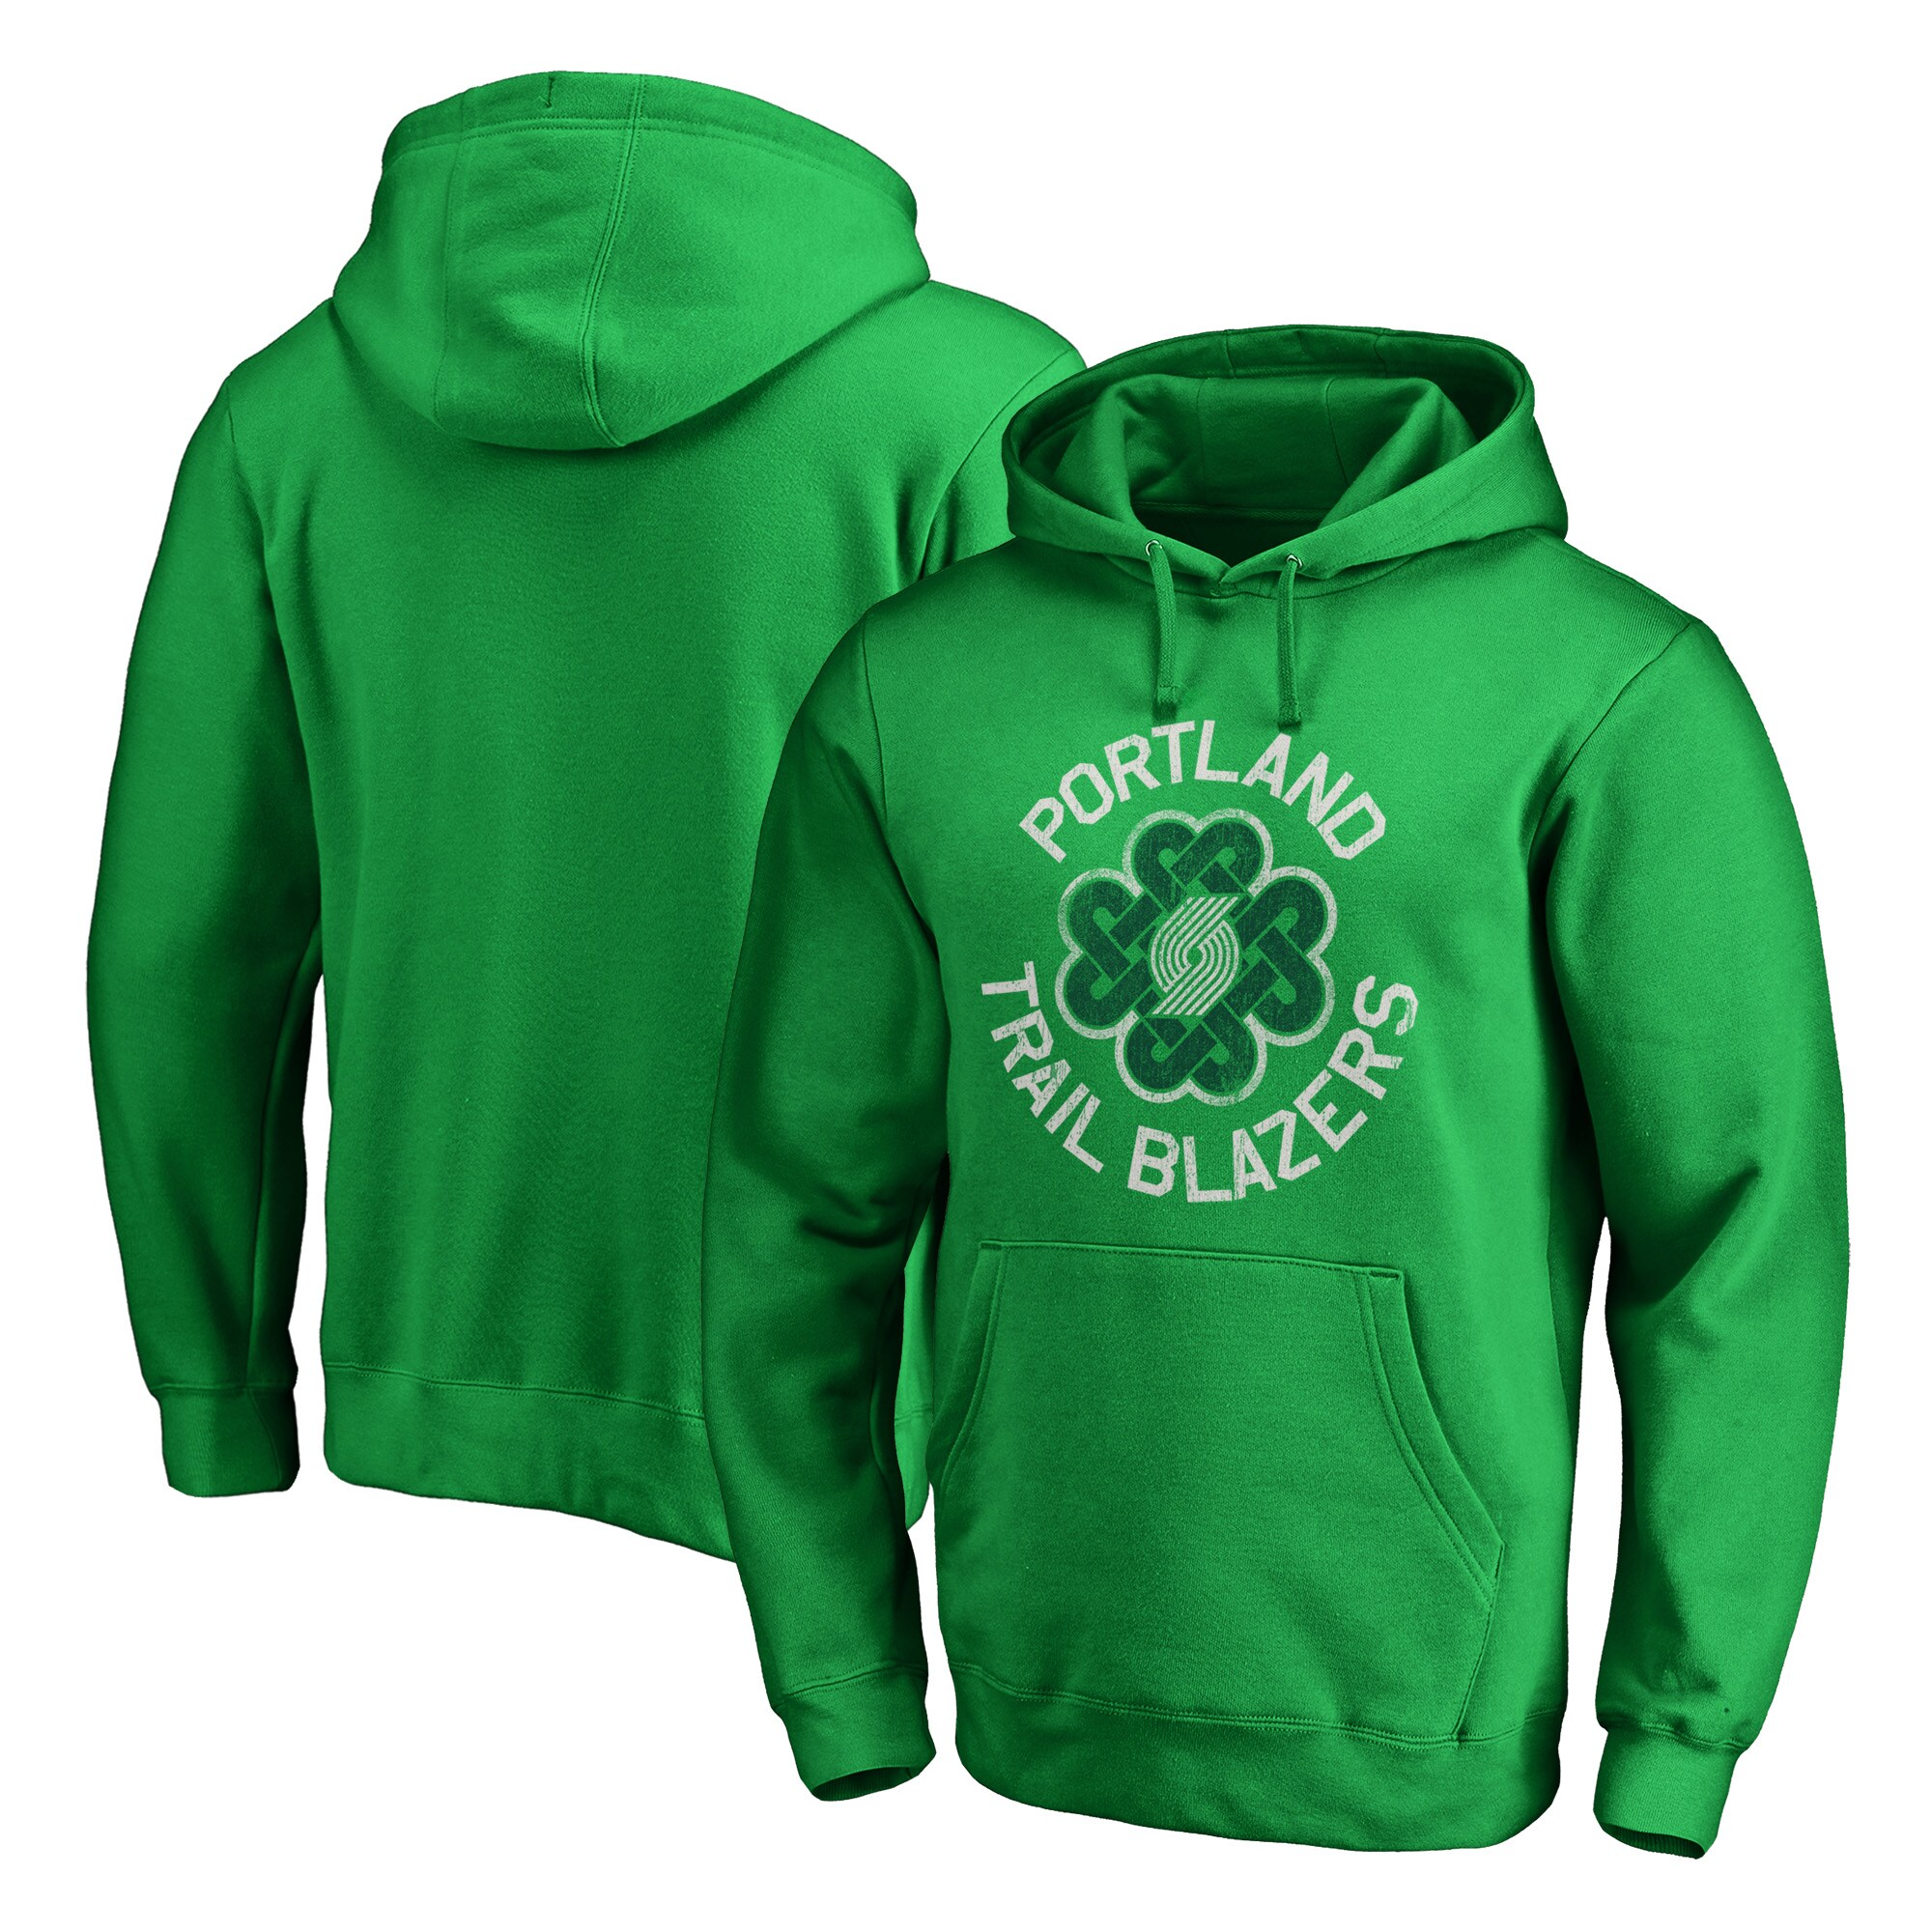 Portland Trail Blazers Fanatics Branded St. Patrick's Day Luck Tradition Pullover Hoodie - Kelly Green